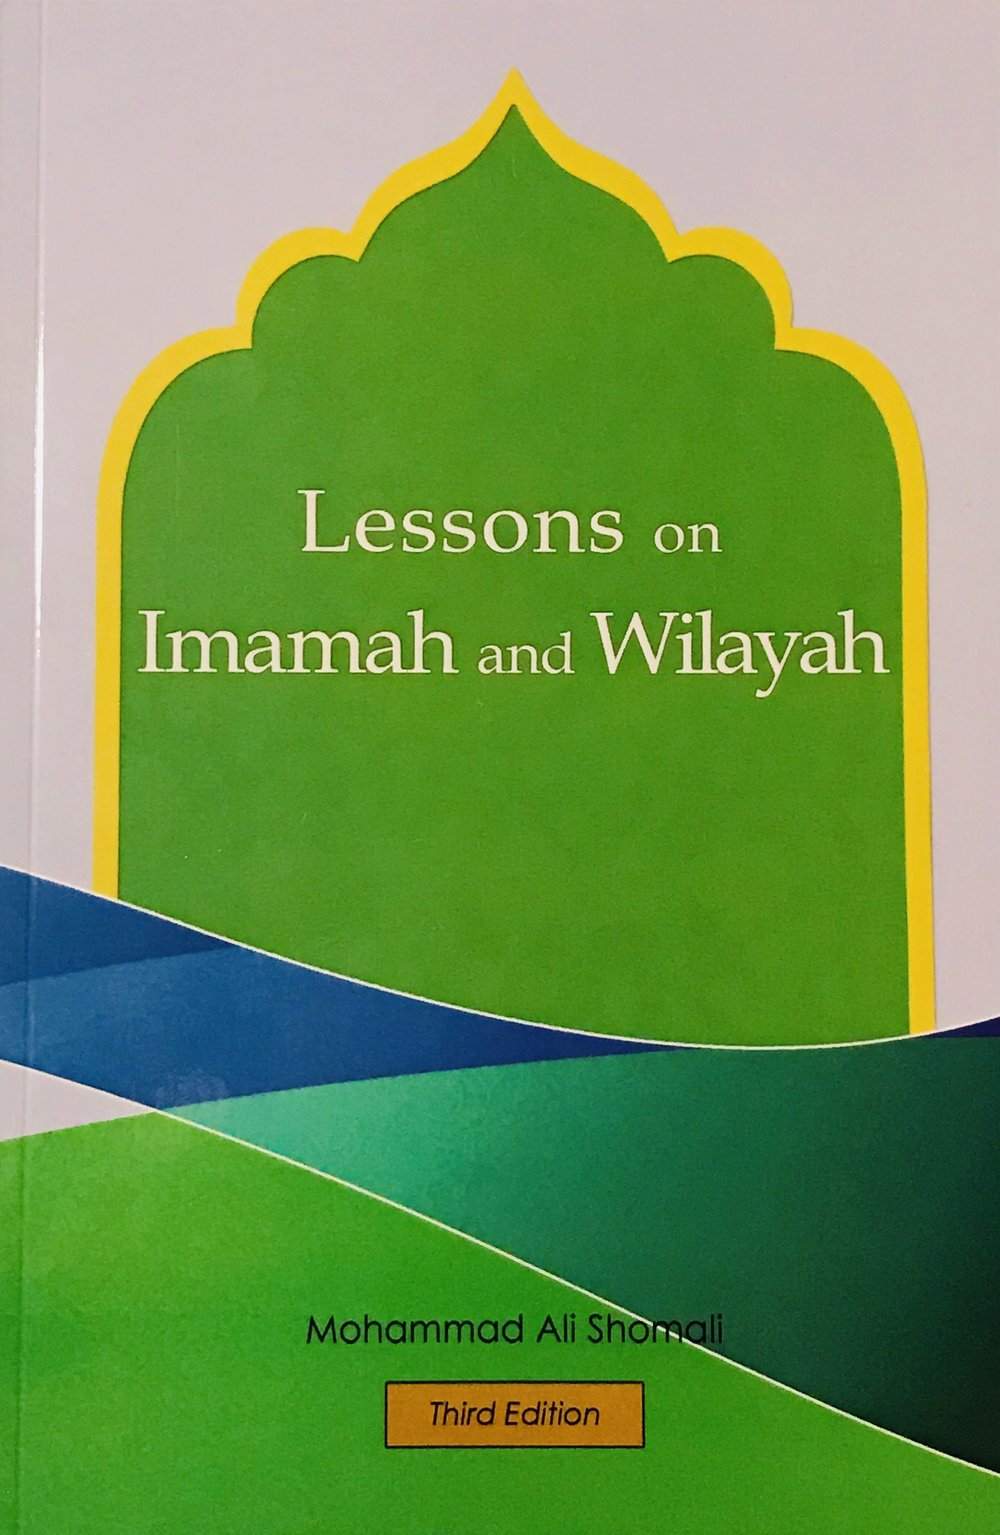 Lessons on Imamah and Wilayah